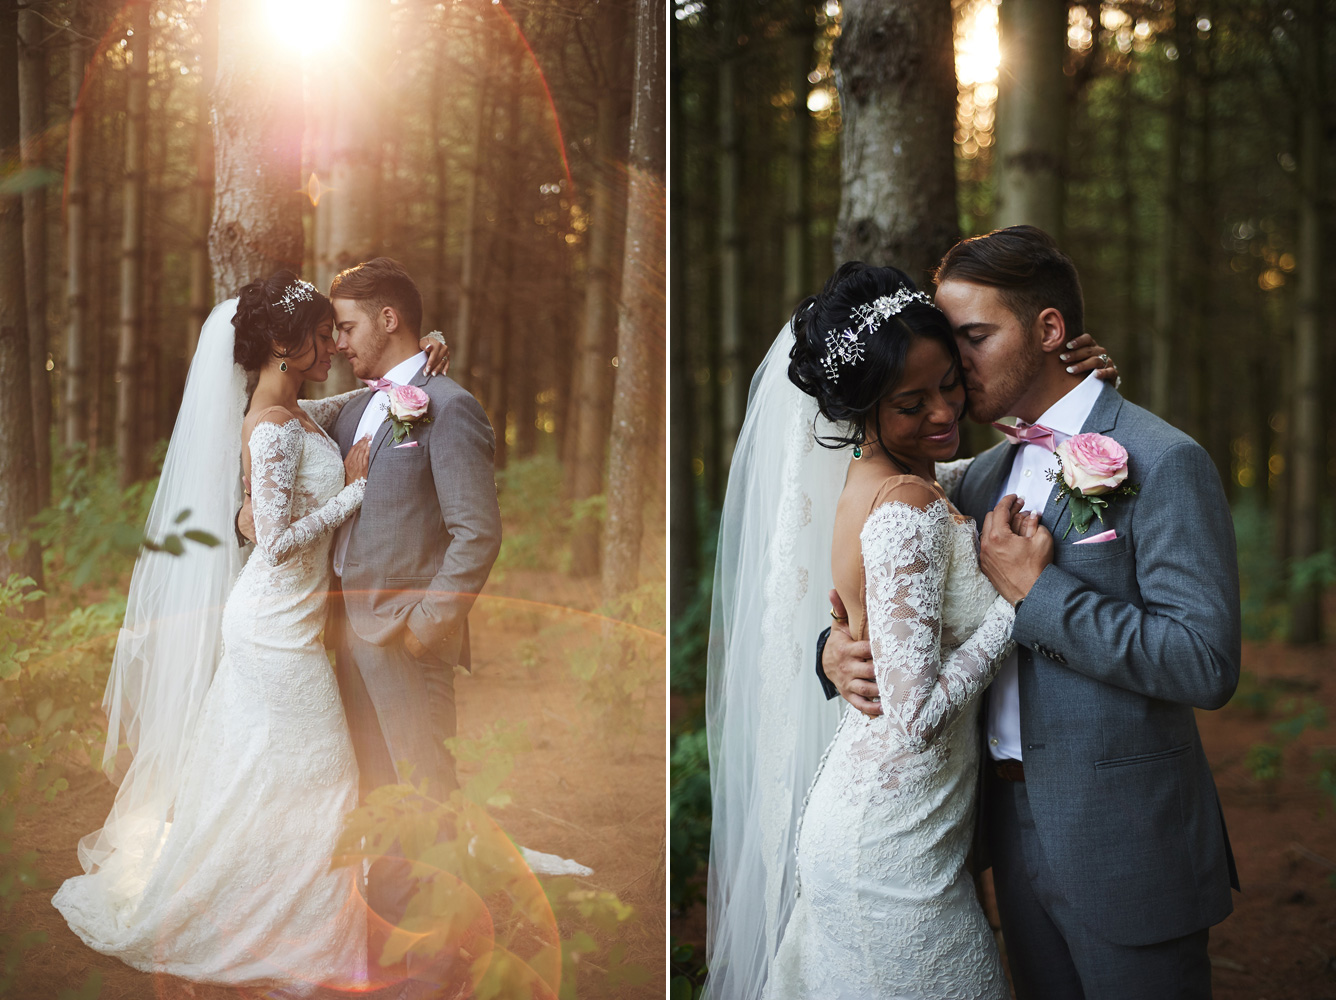 bride-and-groom-wedding-portraits-in-a-sunbeam.jpg